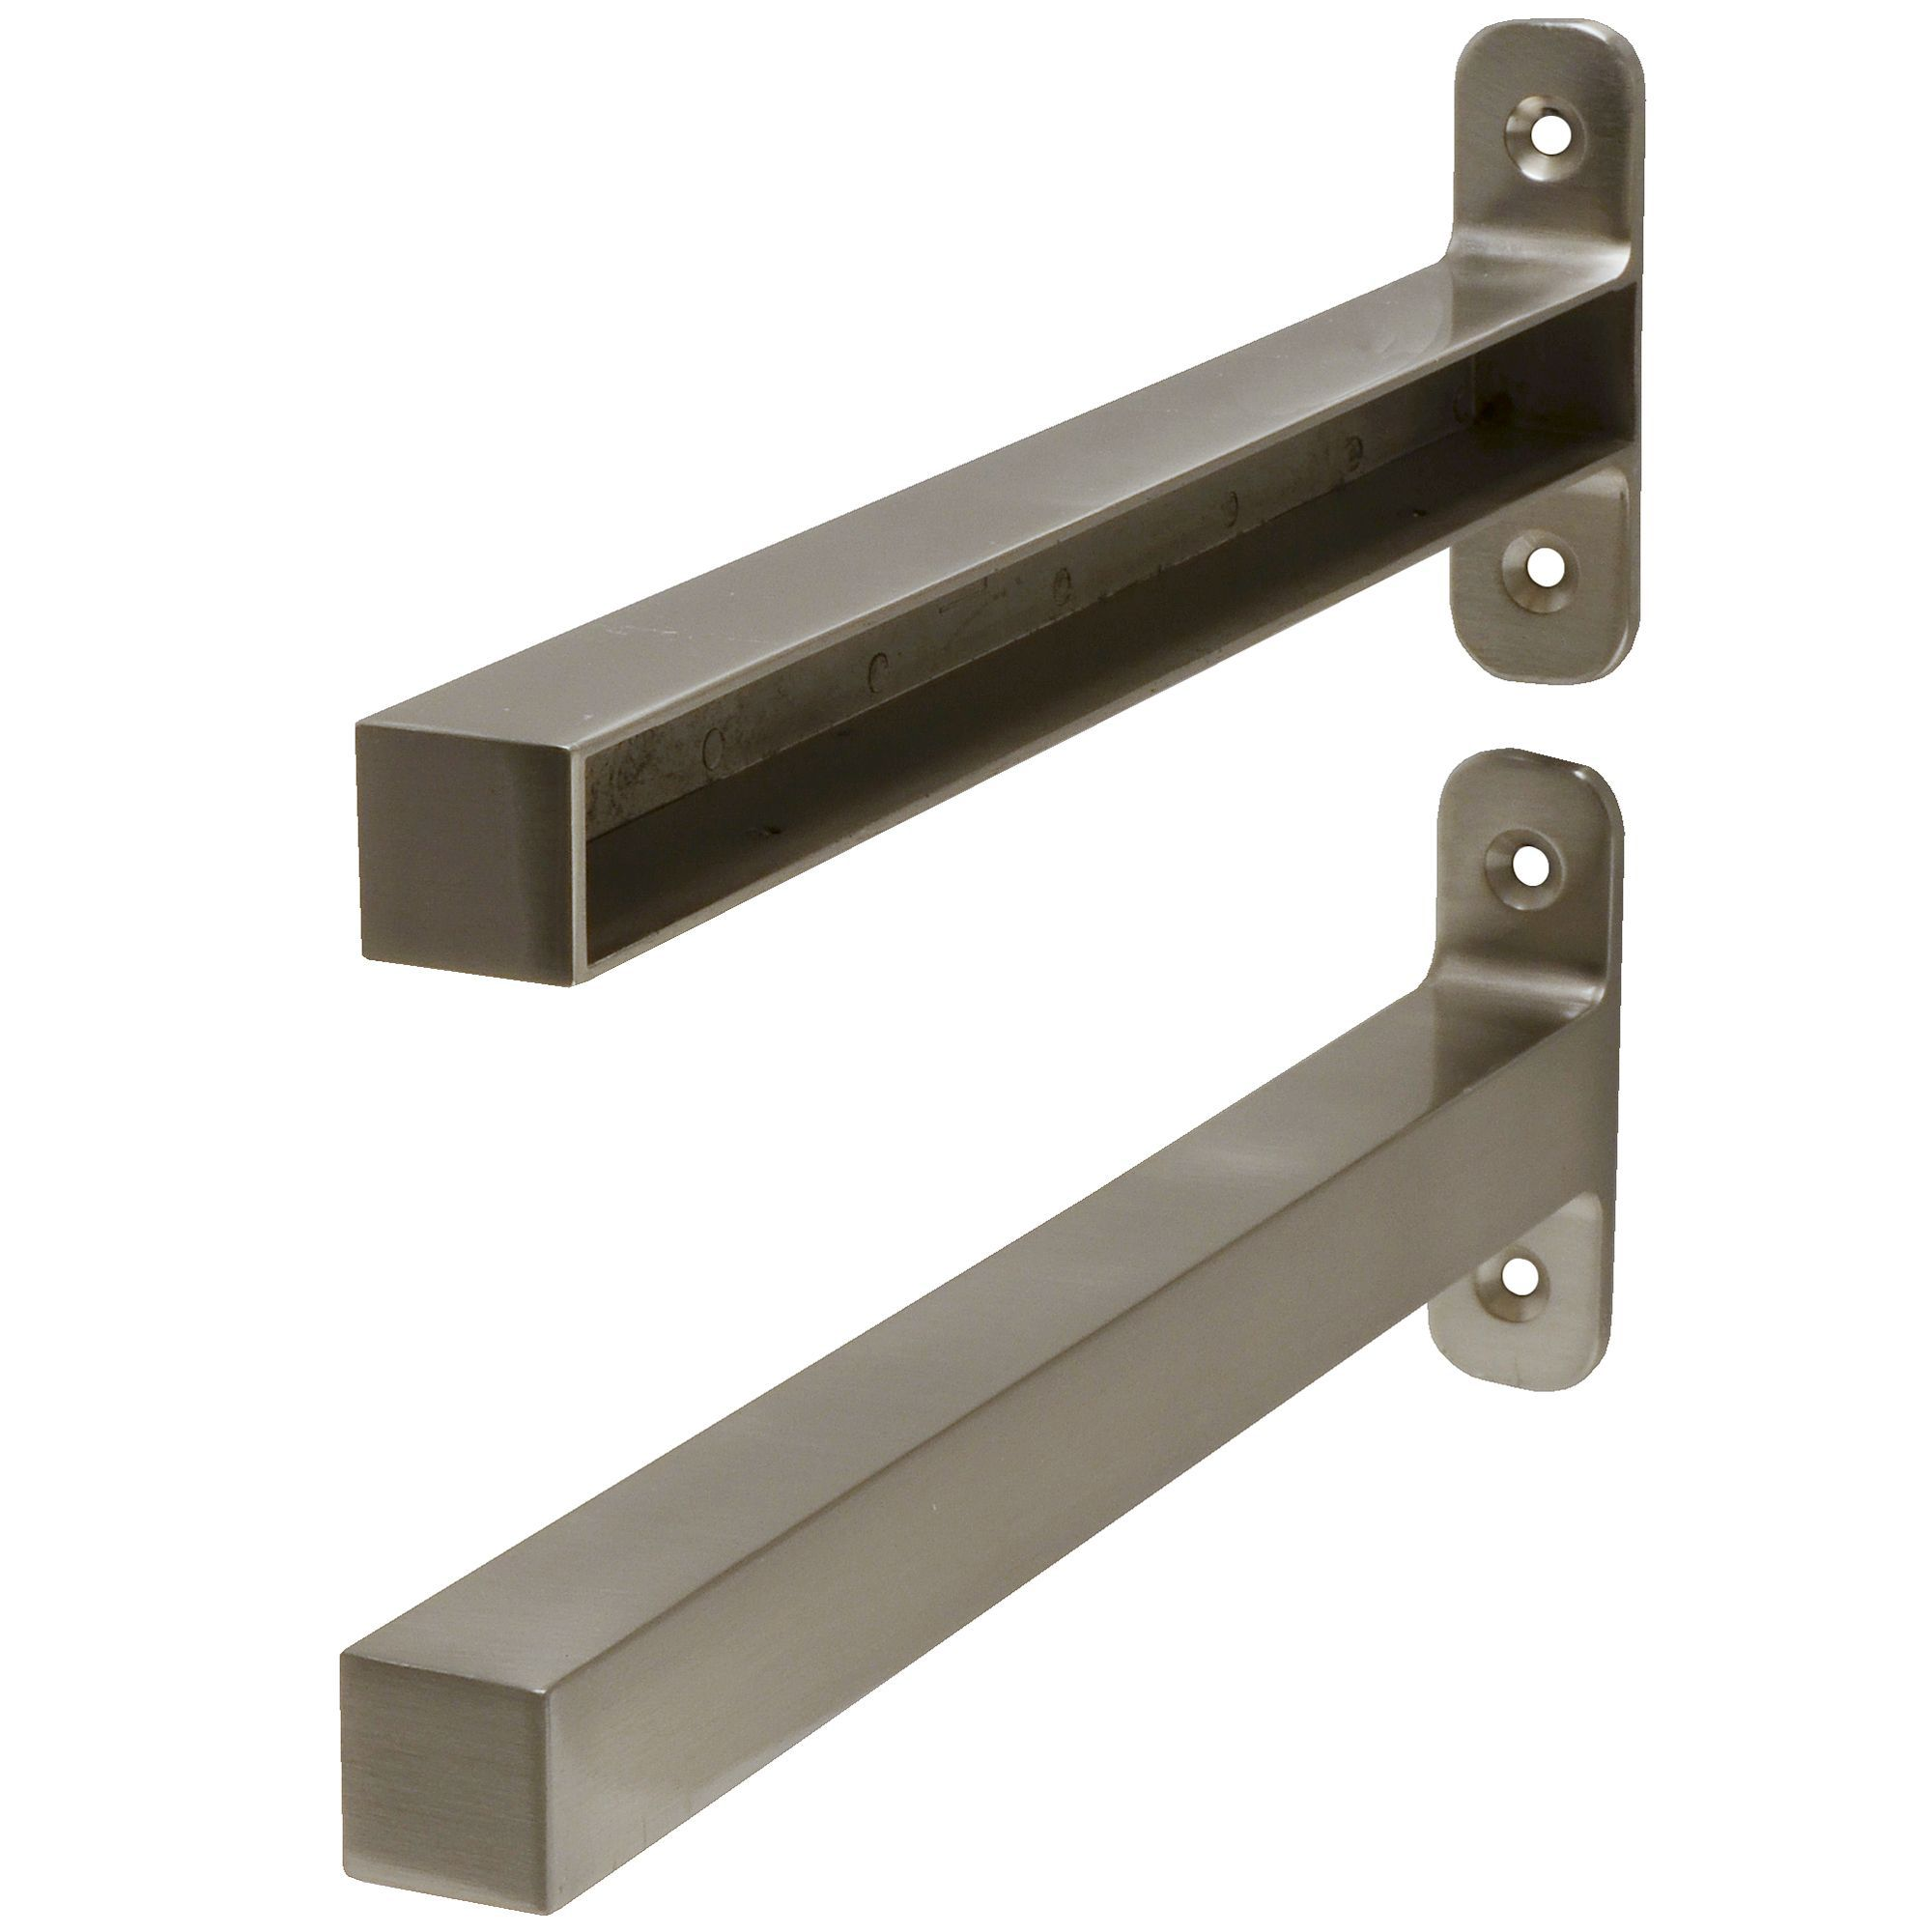 Form Brackets Brushed Aluminium Effect Steel Shelf Bracket